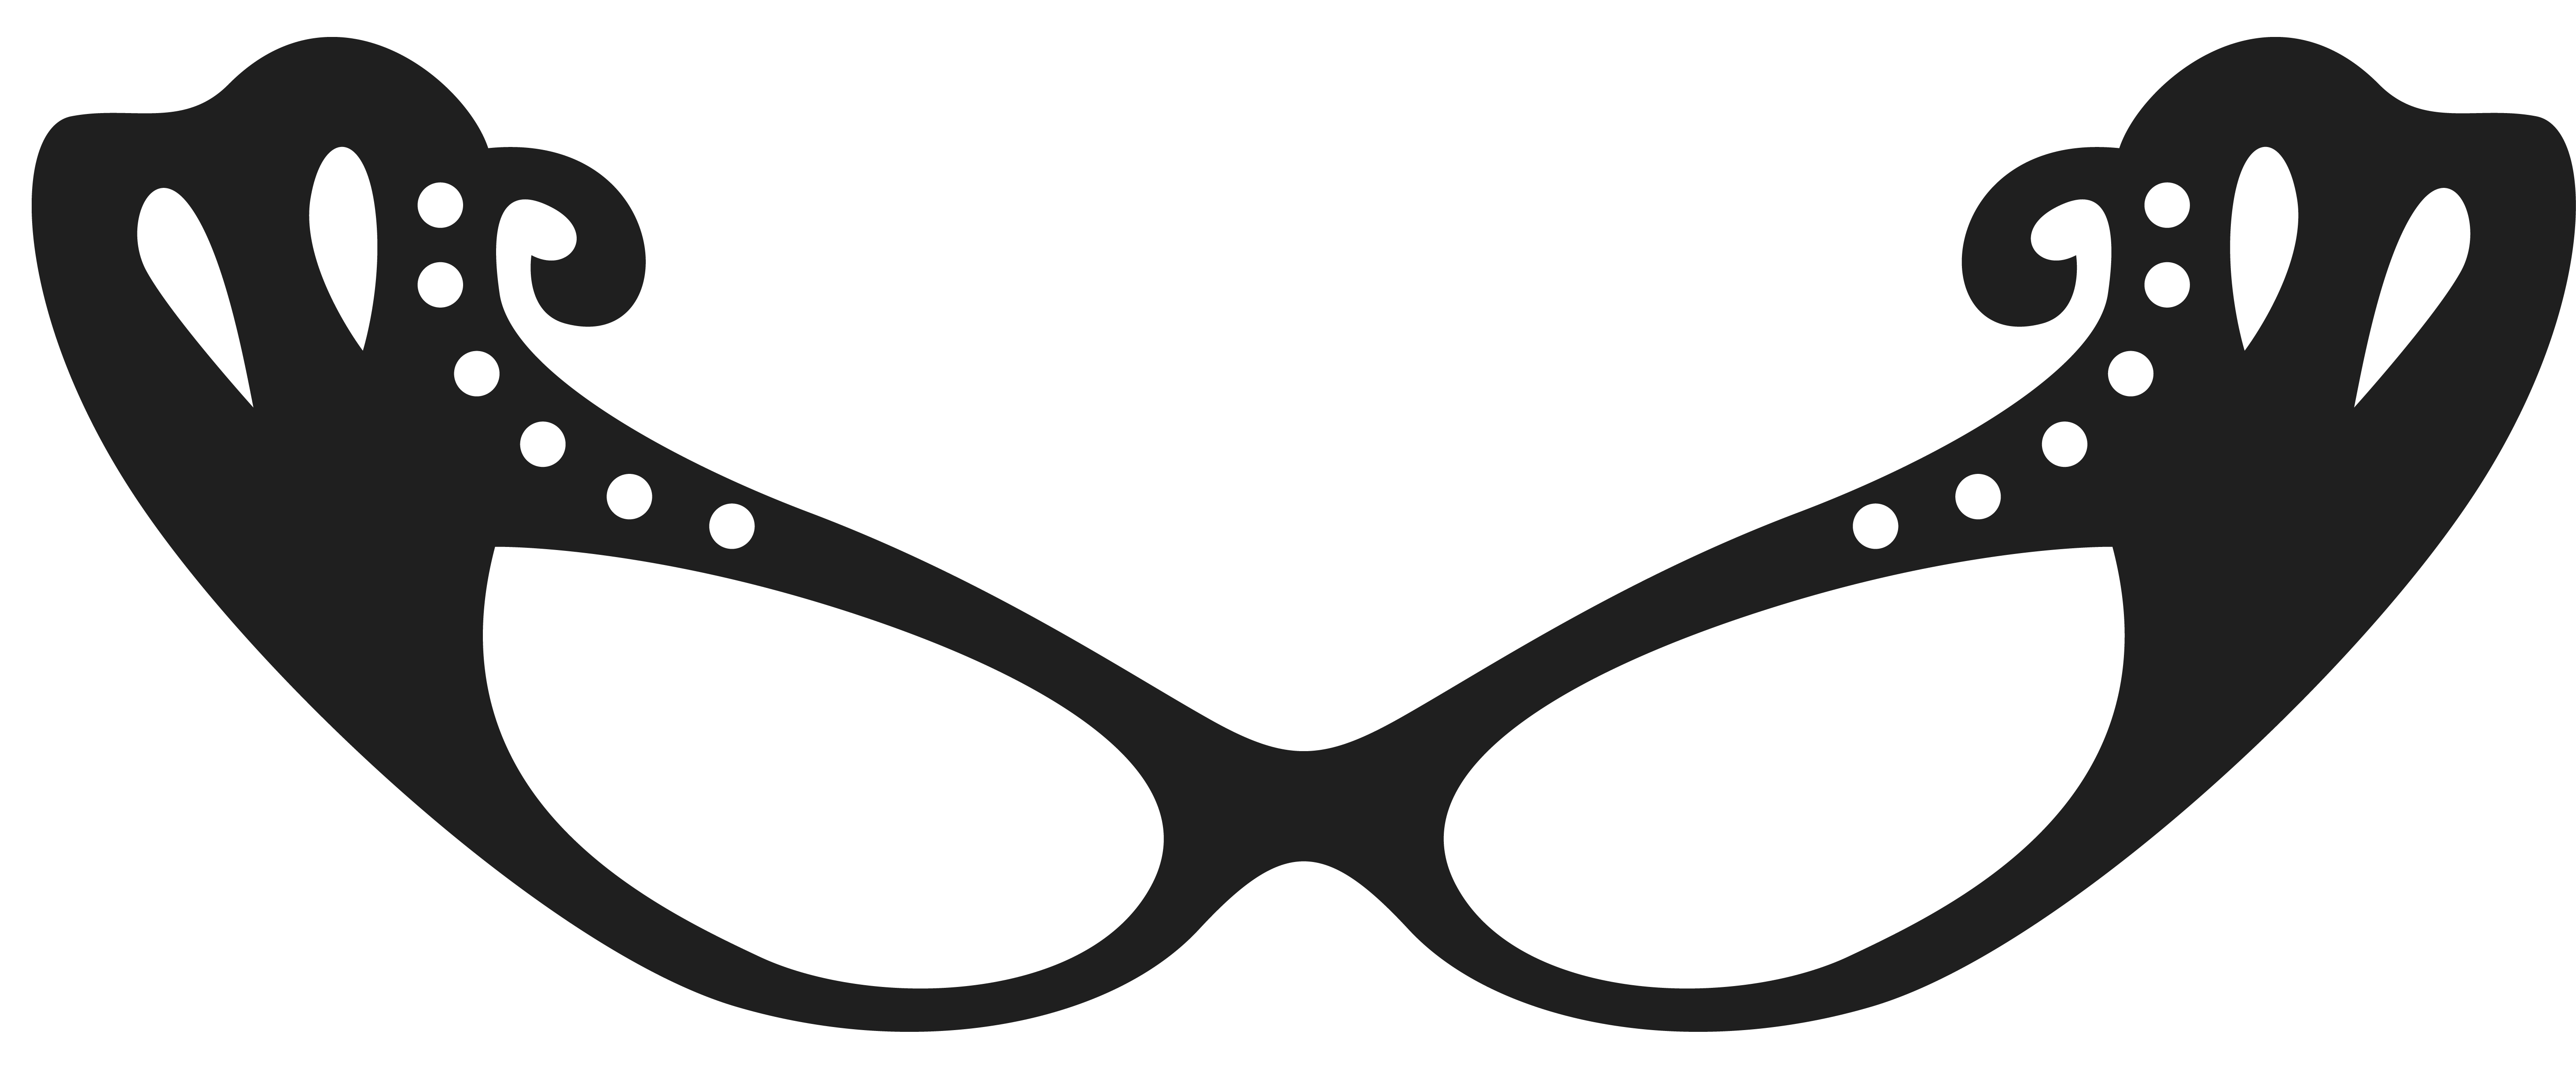 Eyeglasses clipart party. Wedding reception theatrical property